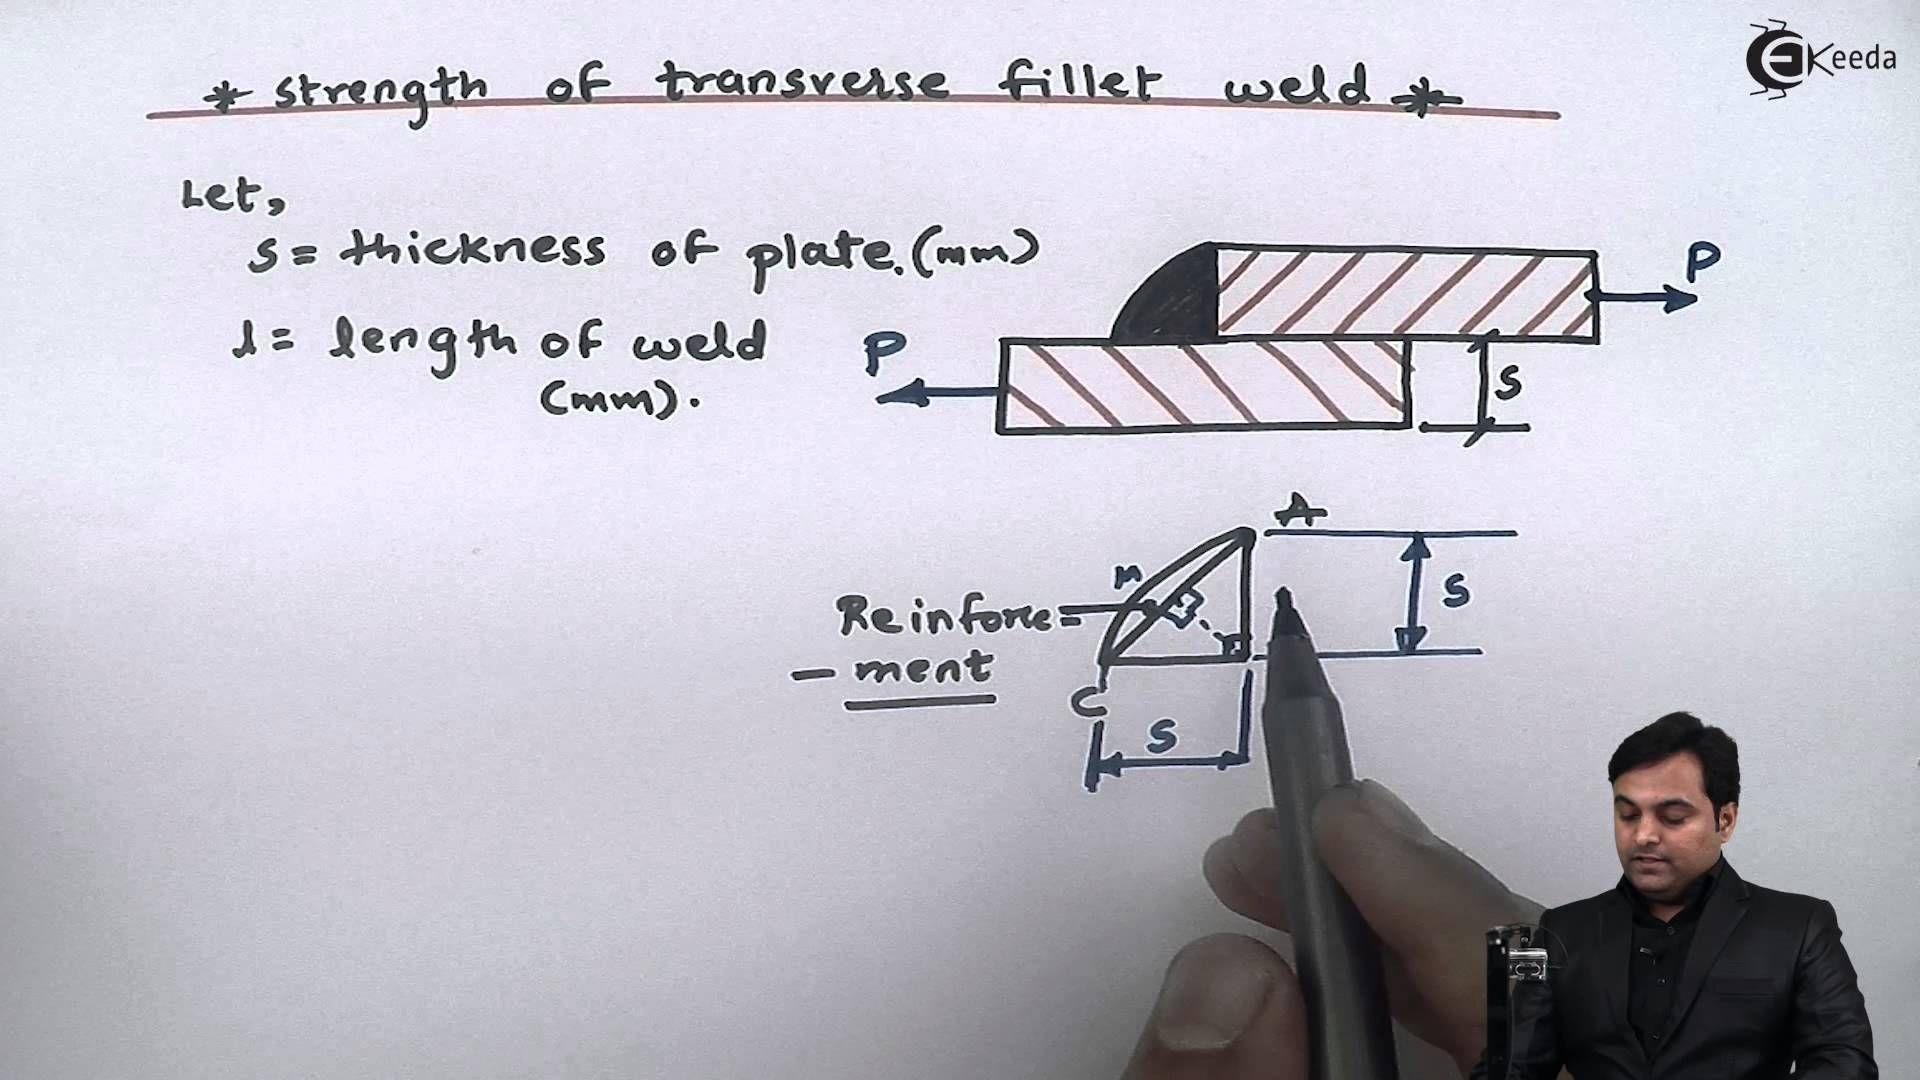 Learn Strength of transverse fillet-weld Video Tutorials Online